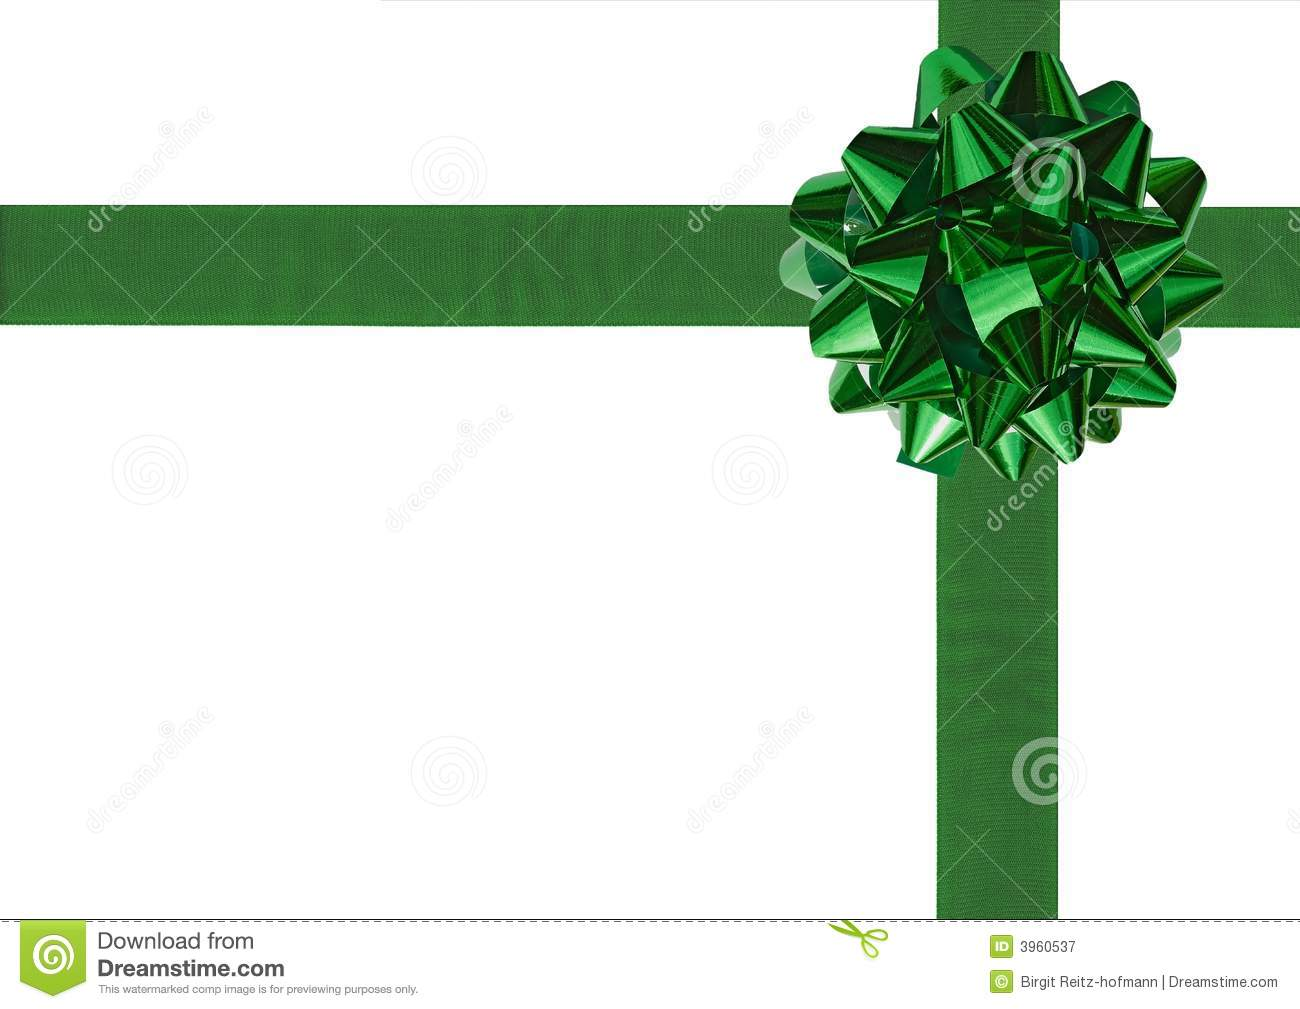 Green gift wrapping bow and ribbon stock image image of green gift wrapping bow and ribbon negle Image collections